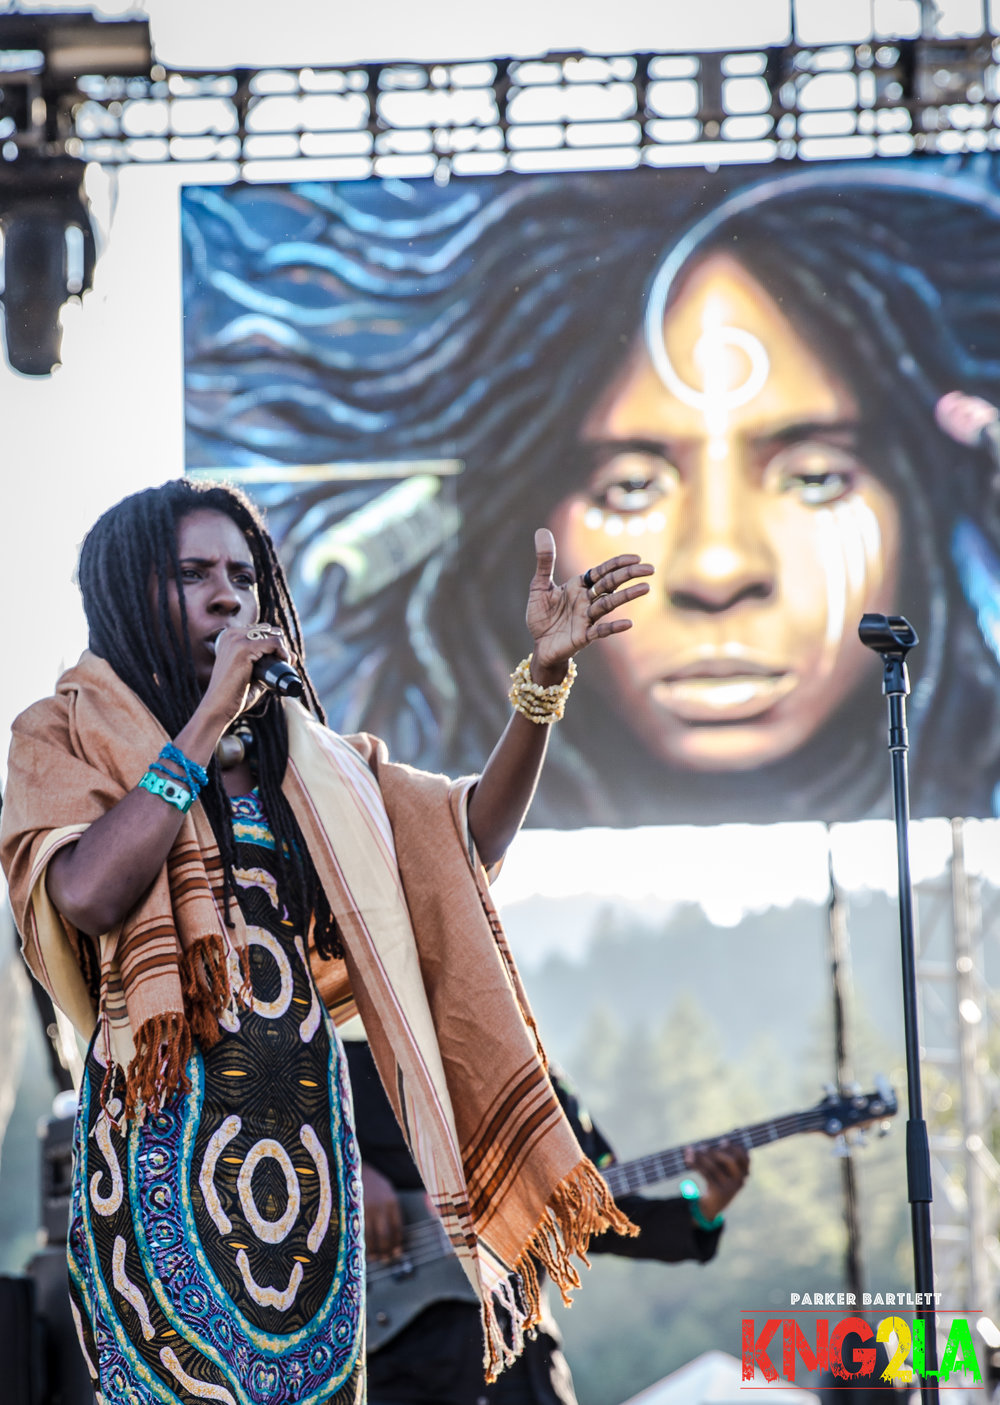 Jah9 performing live at the 2016 Reggae on the River music festival. Photo courtesy of Parker Bartlett.